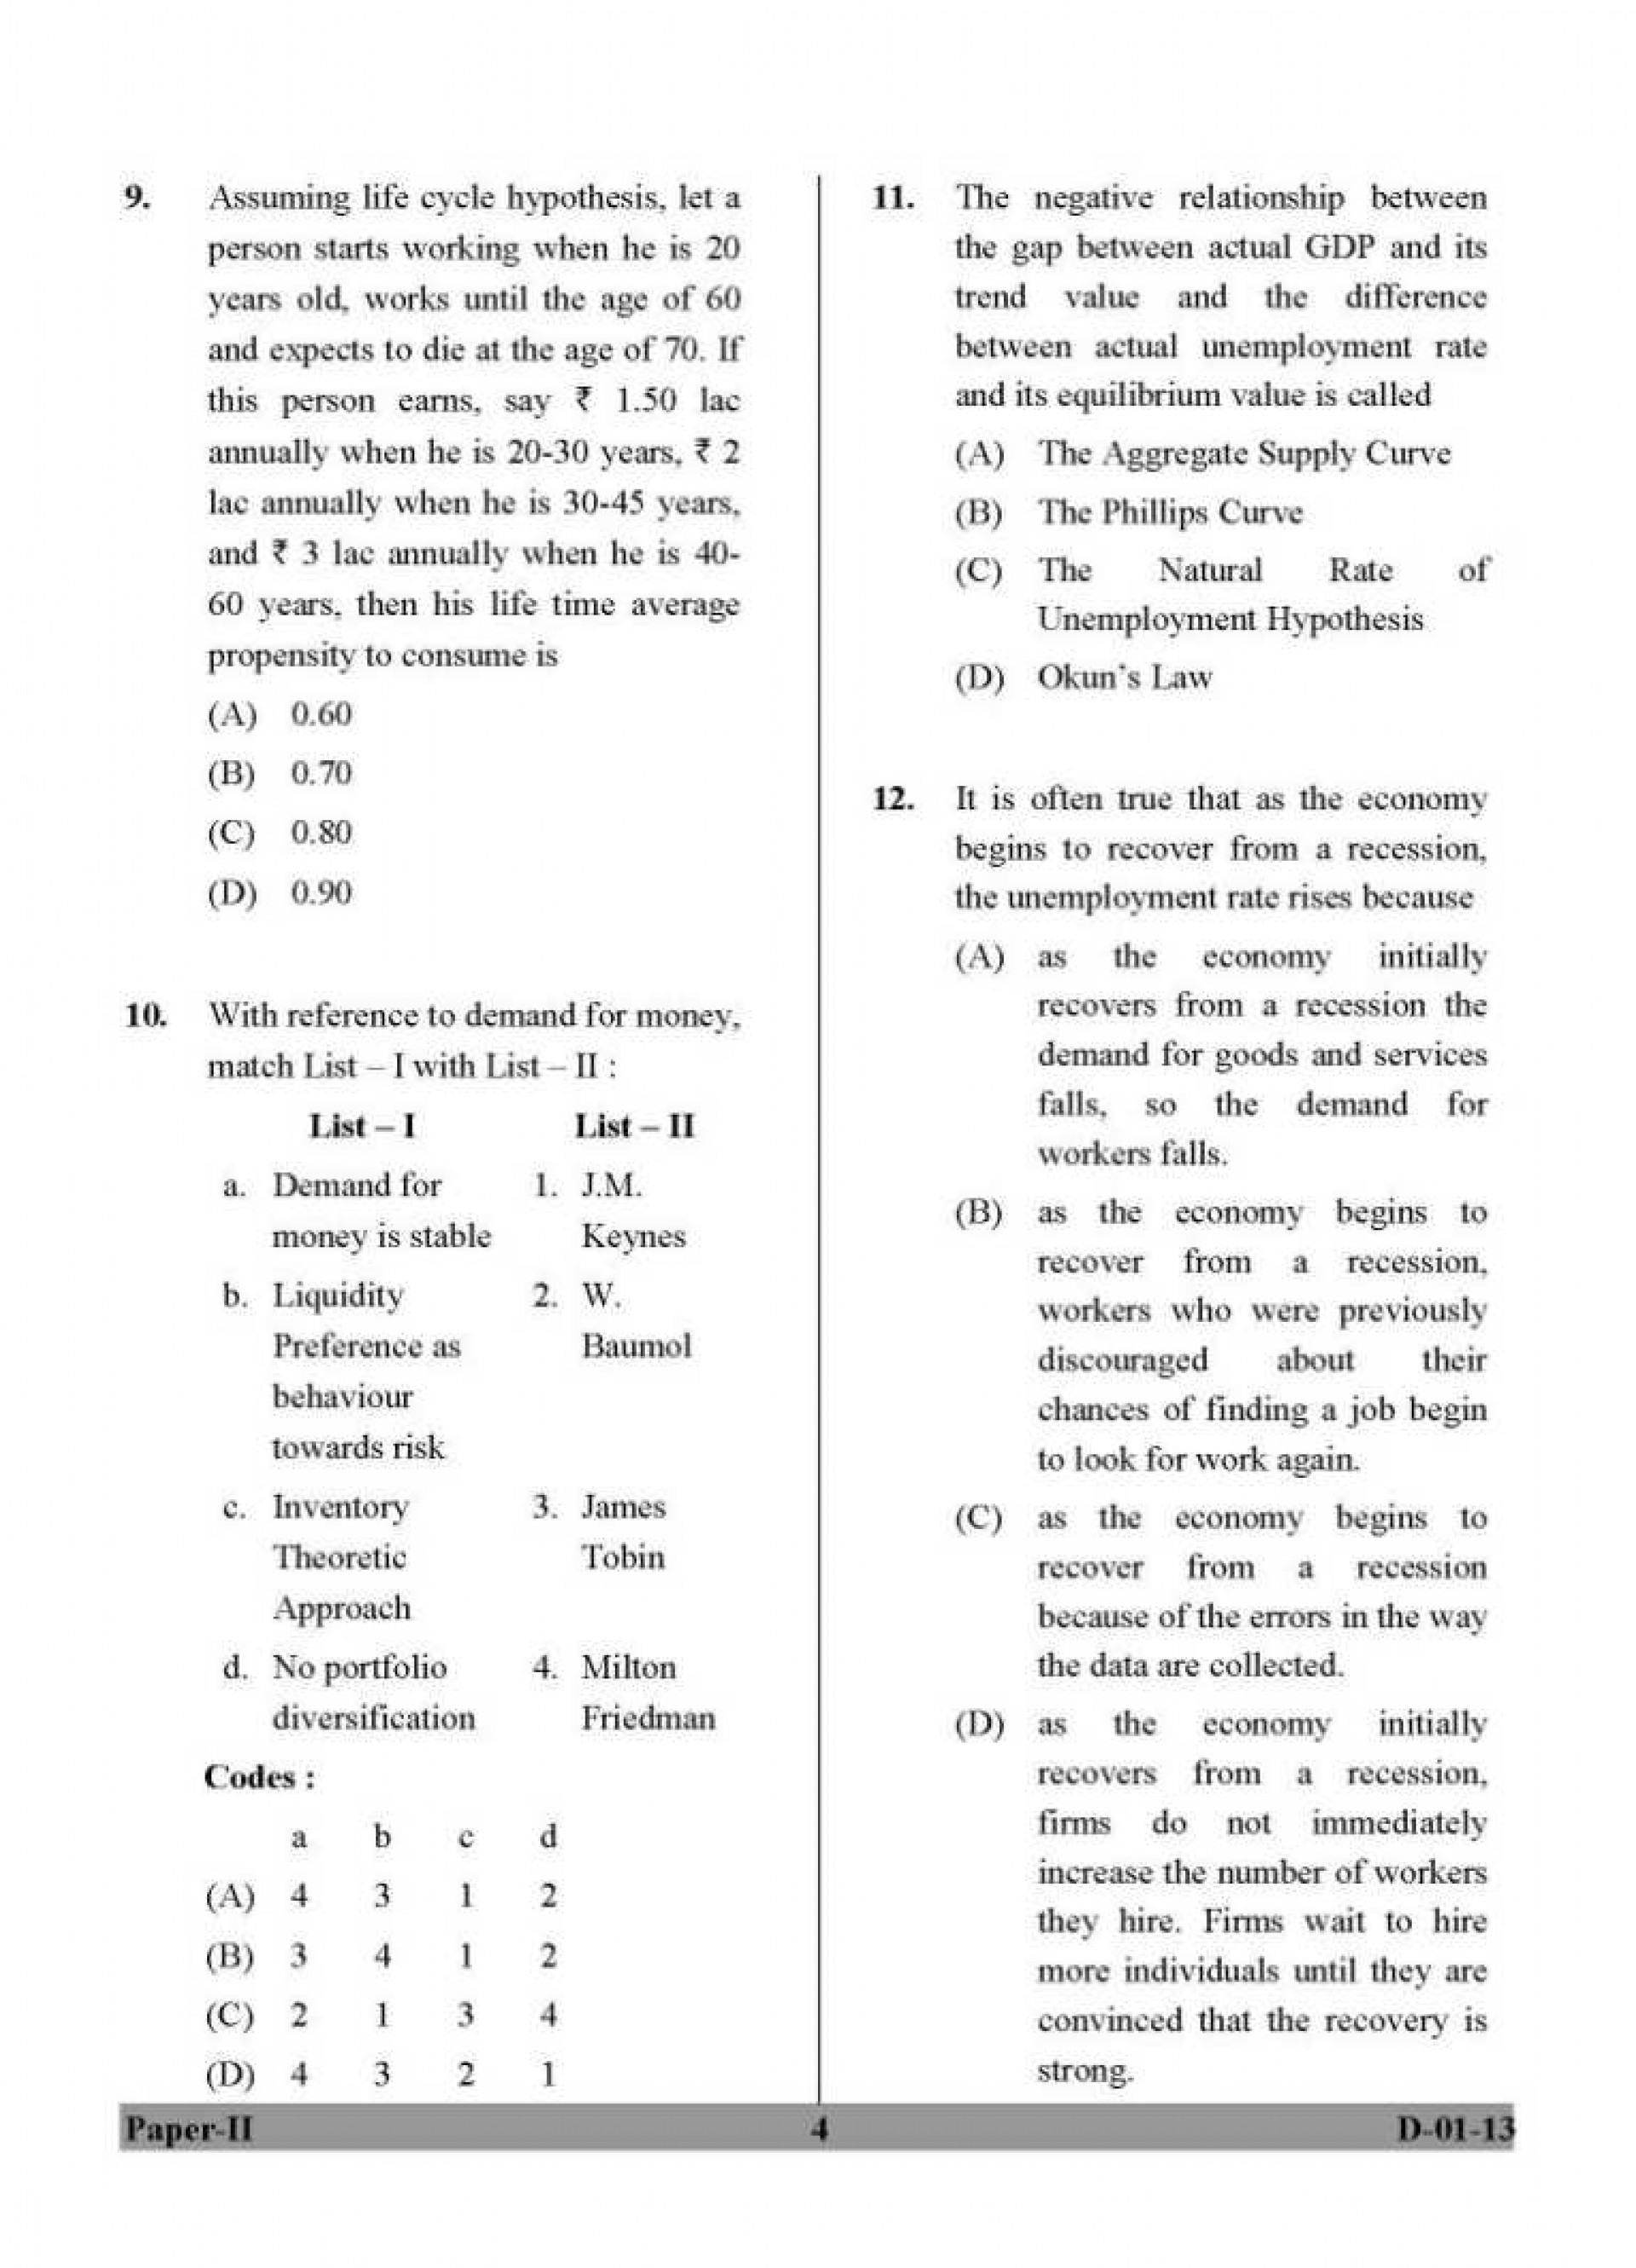 008 Economic Research Papers Topics Paper Model Question Economics Formidable Good For Pdf 1920